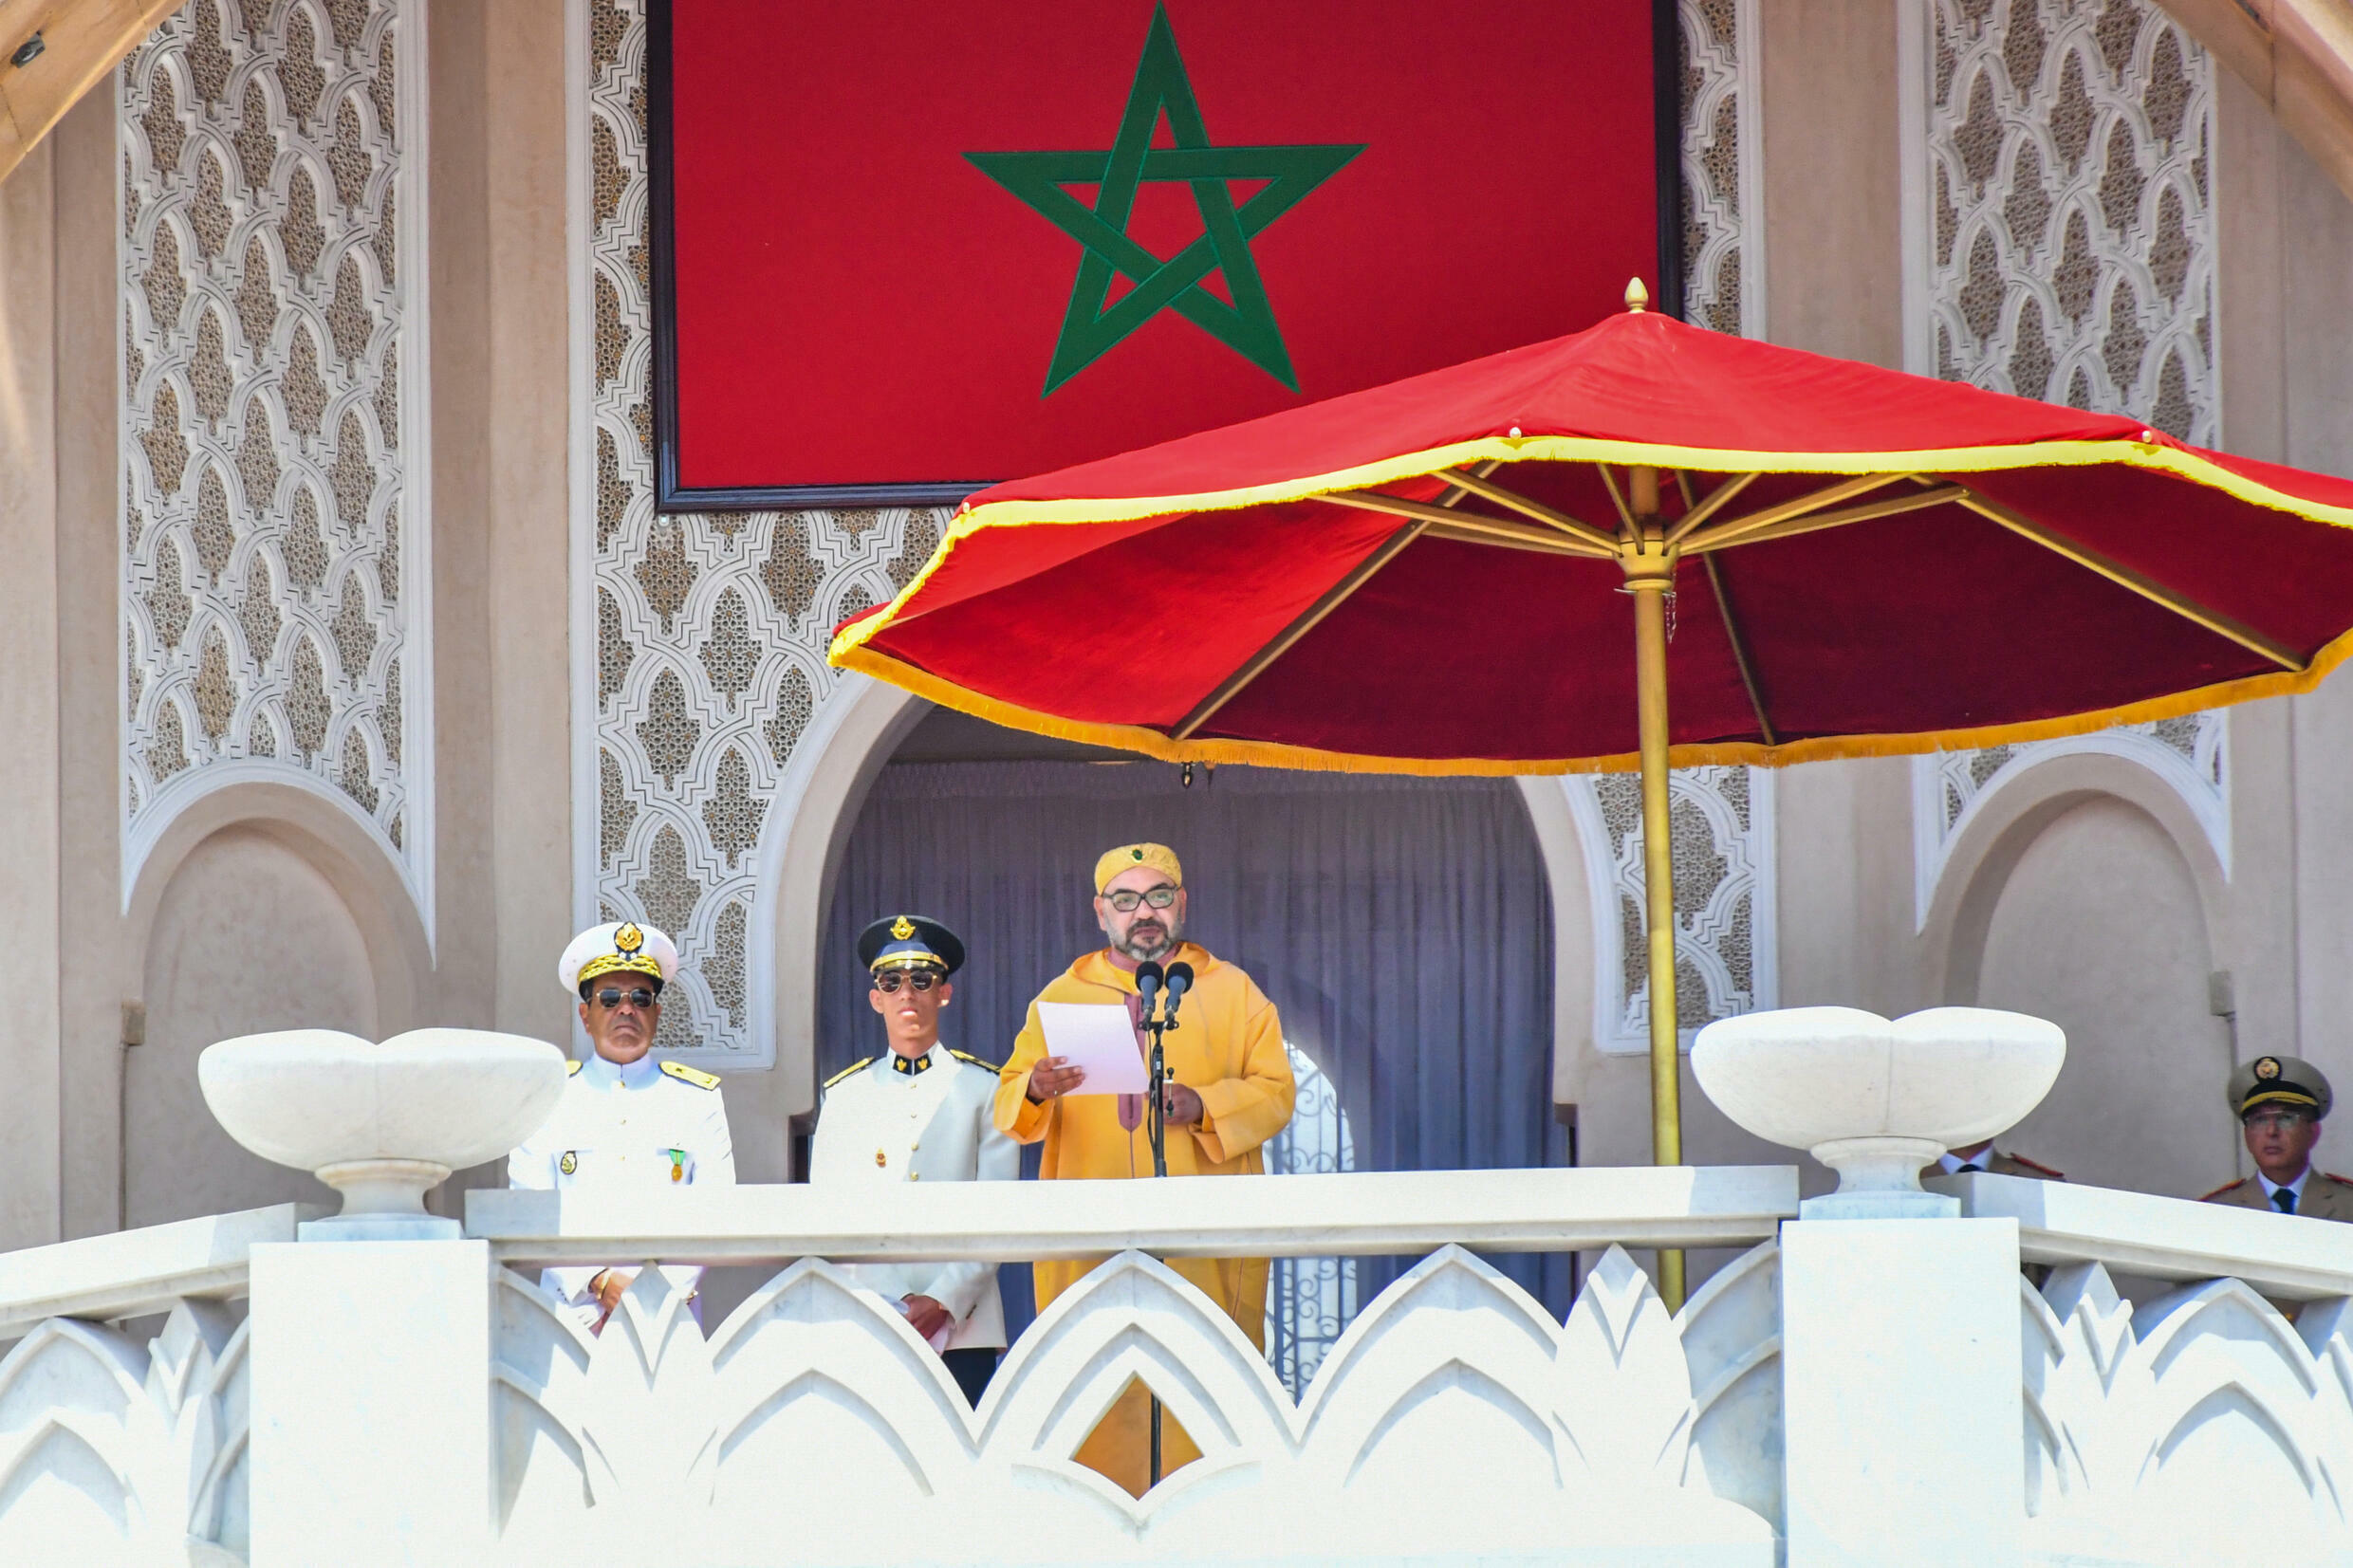 Most of the big decisions in Morocco still ultimately emanate from King Mohammed VI